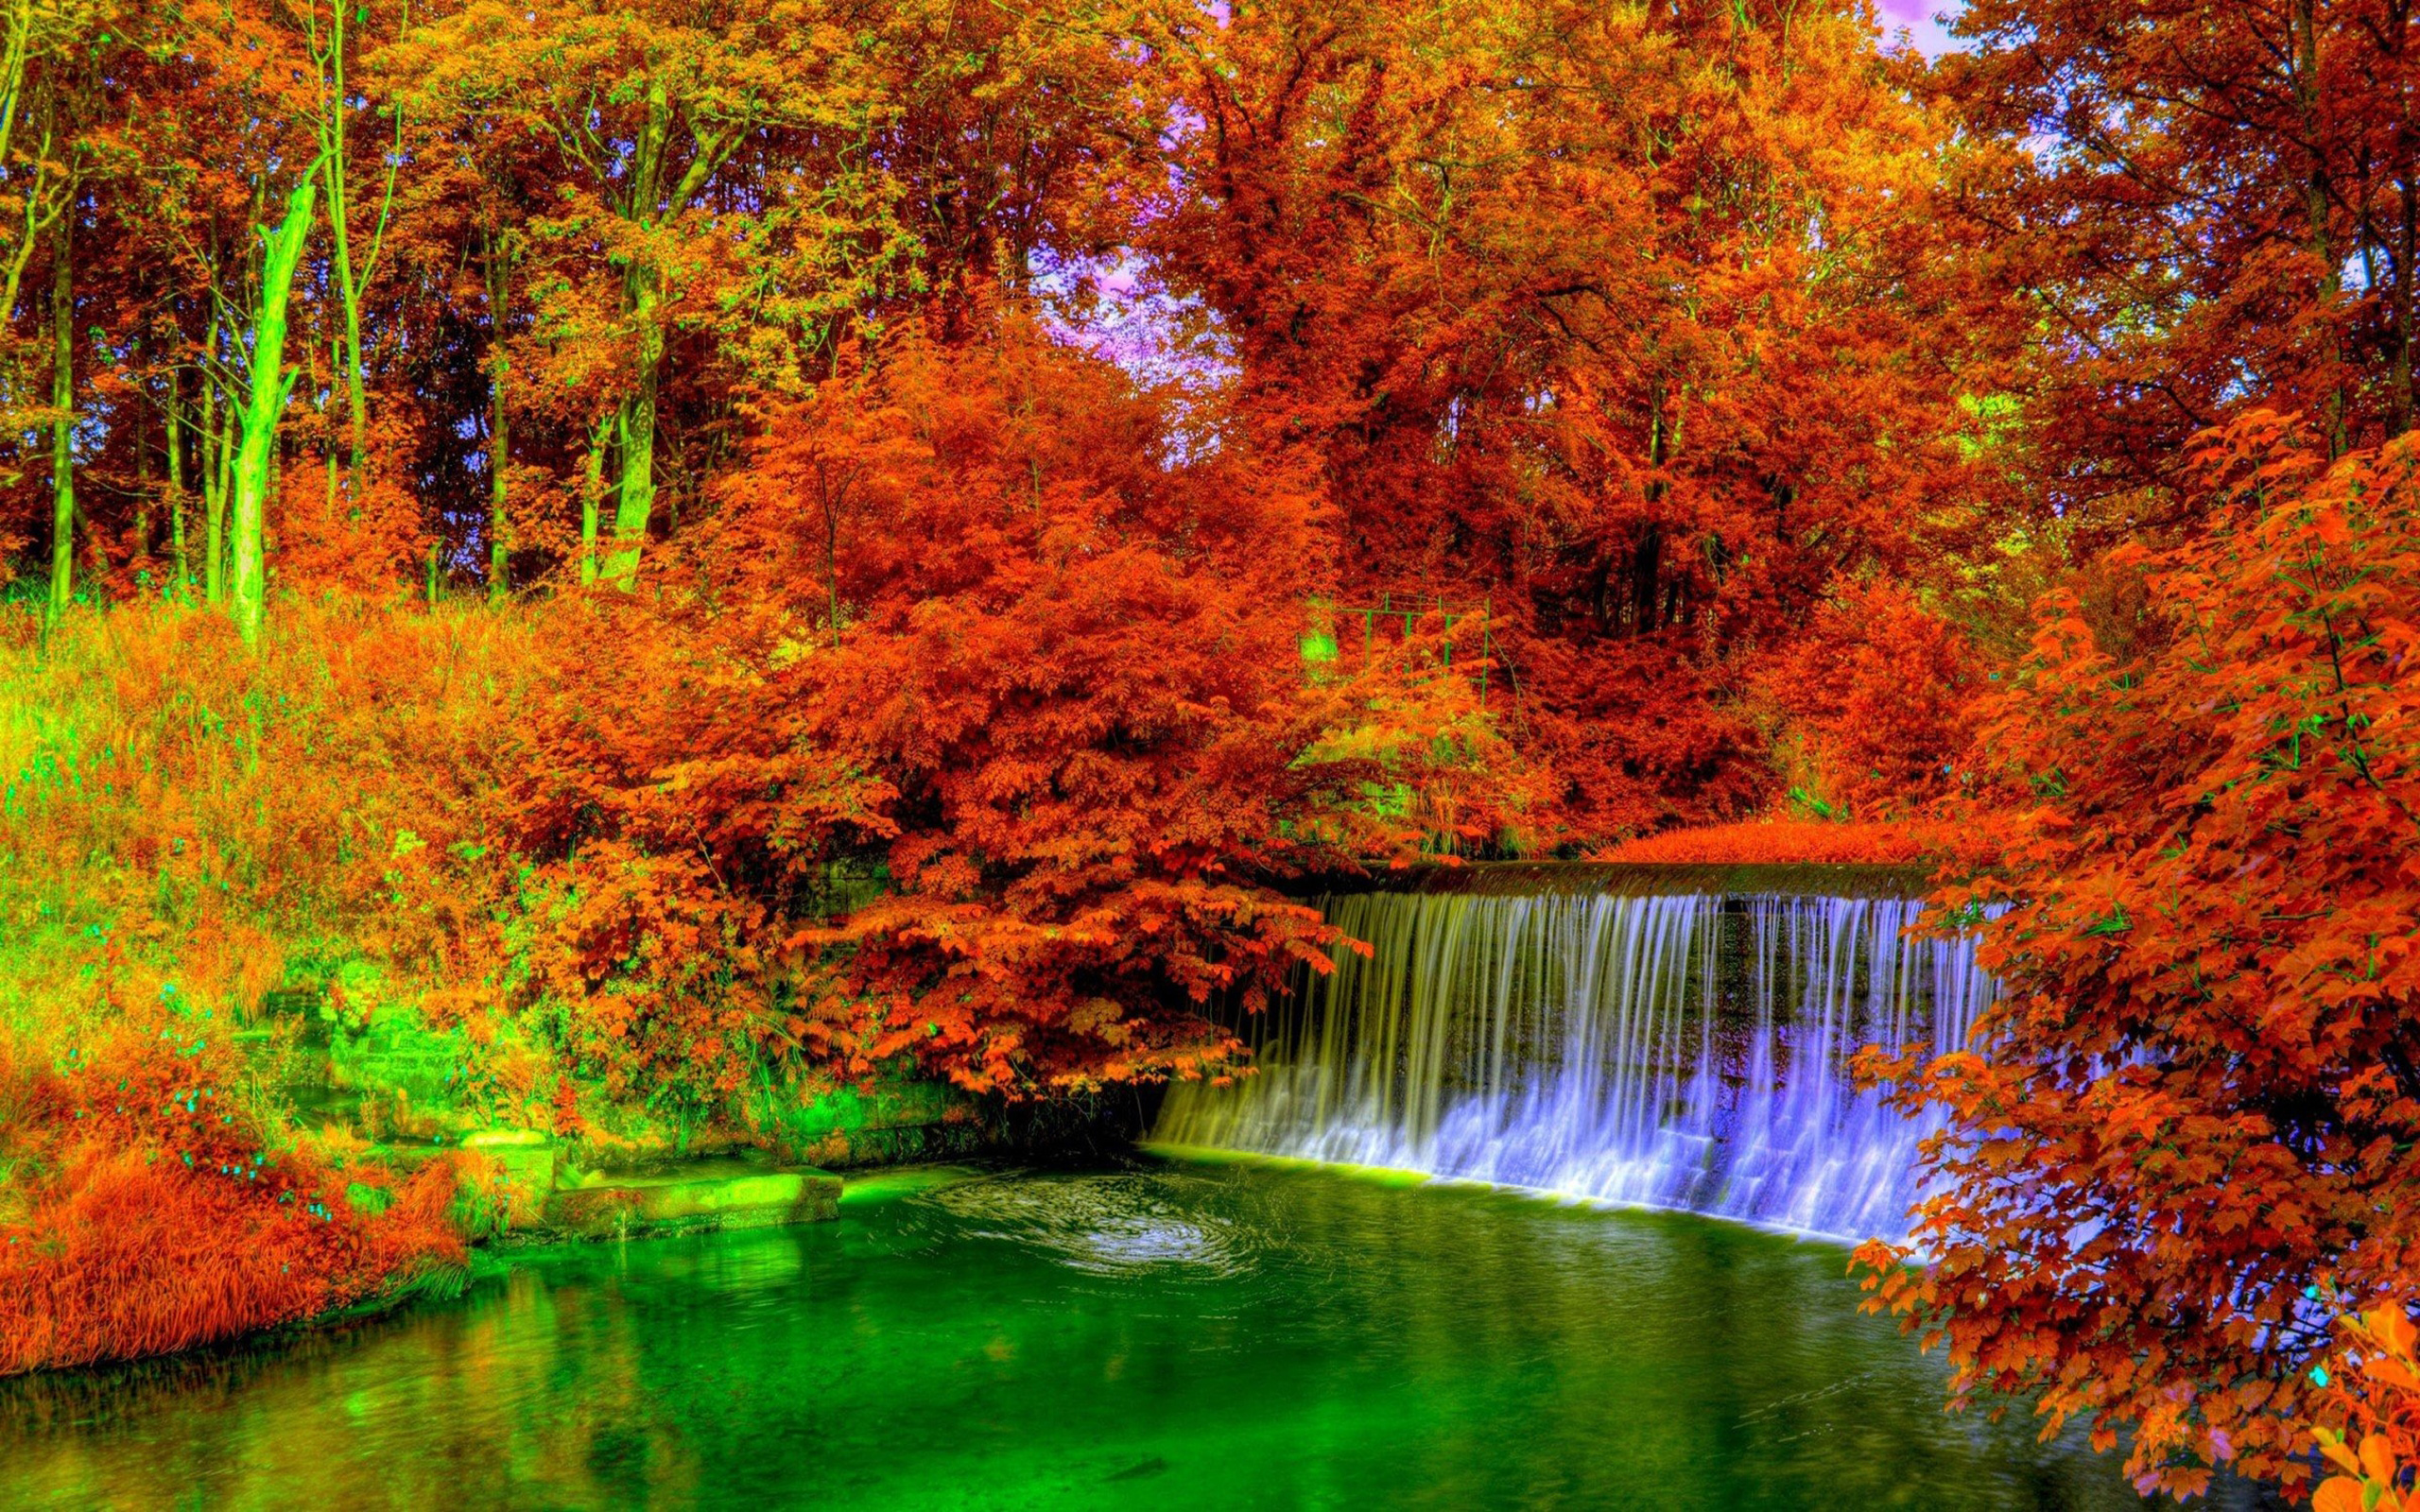 Fall Leaves Iphone Wallpaper Autumn Trees Nature Landscape Leaf Leaves 7652